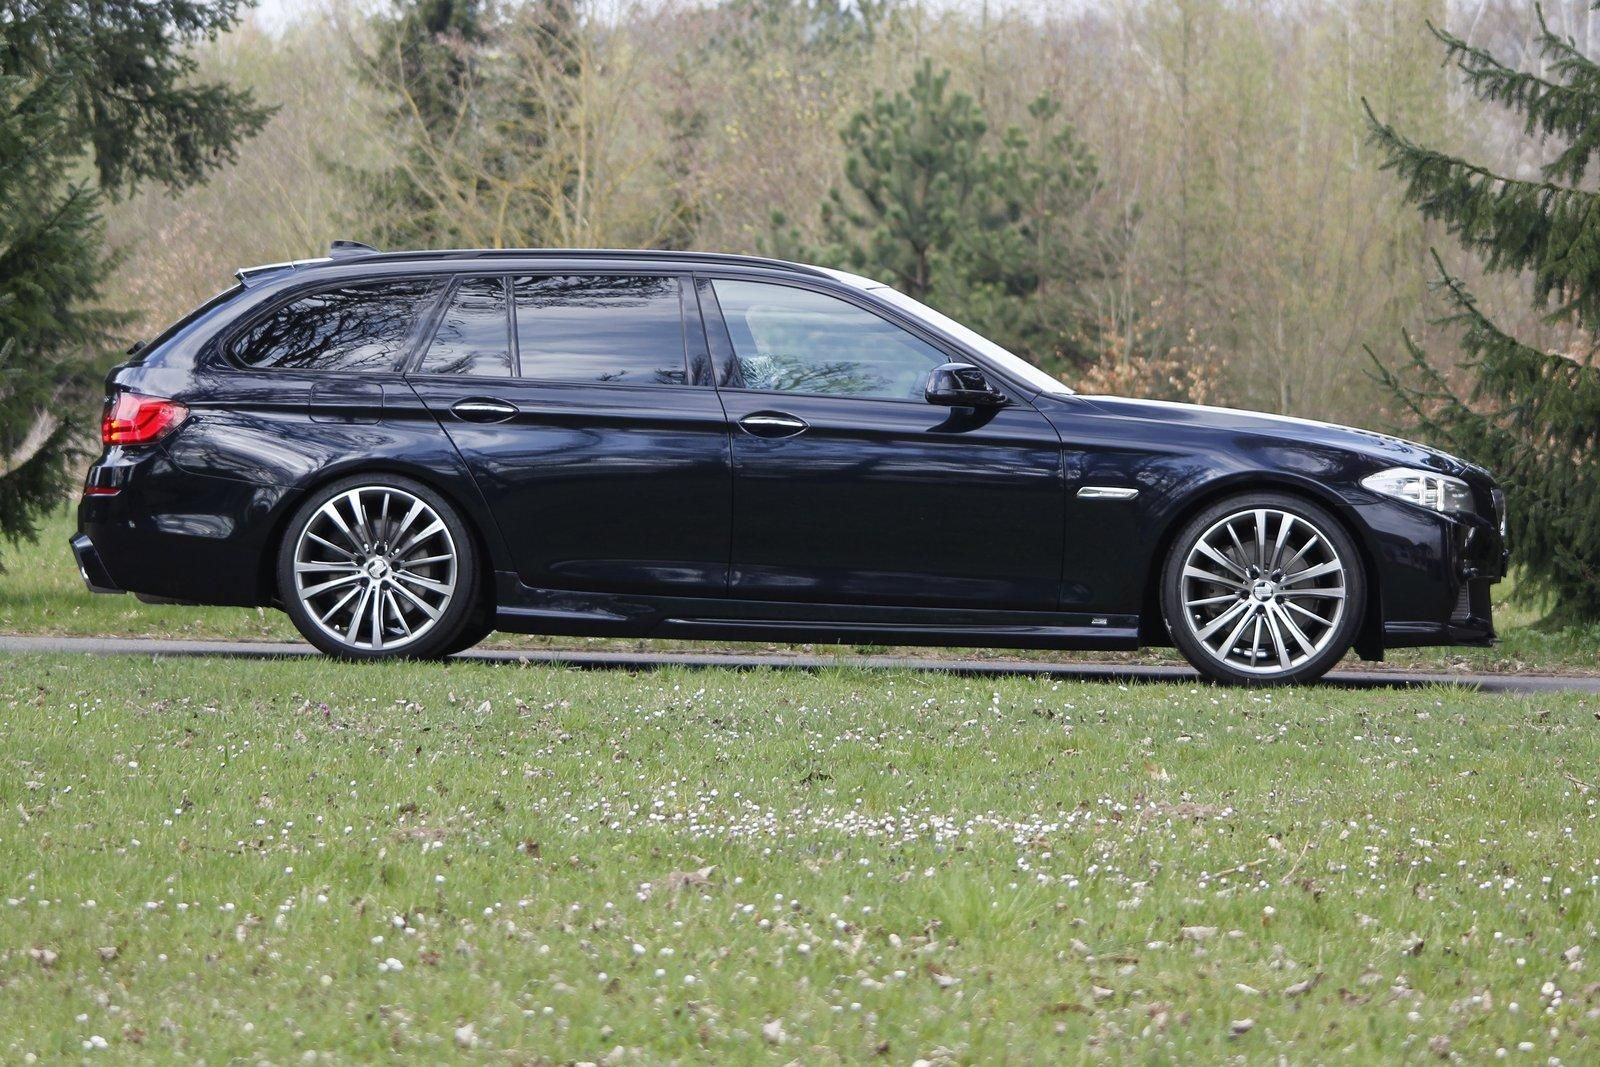 F11 alpina b5 biturbo touring page 2 5series net forums - F10 F11 Model Year 2010 2016 Google Search Best Design Pinterest Bmw And Cars